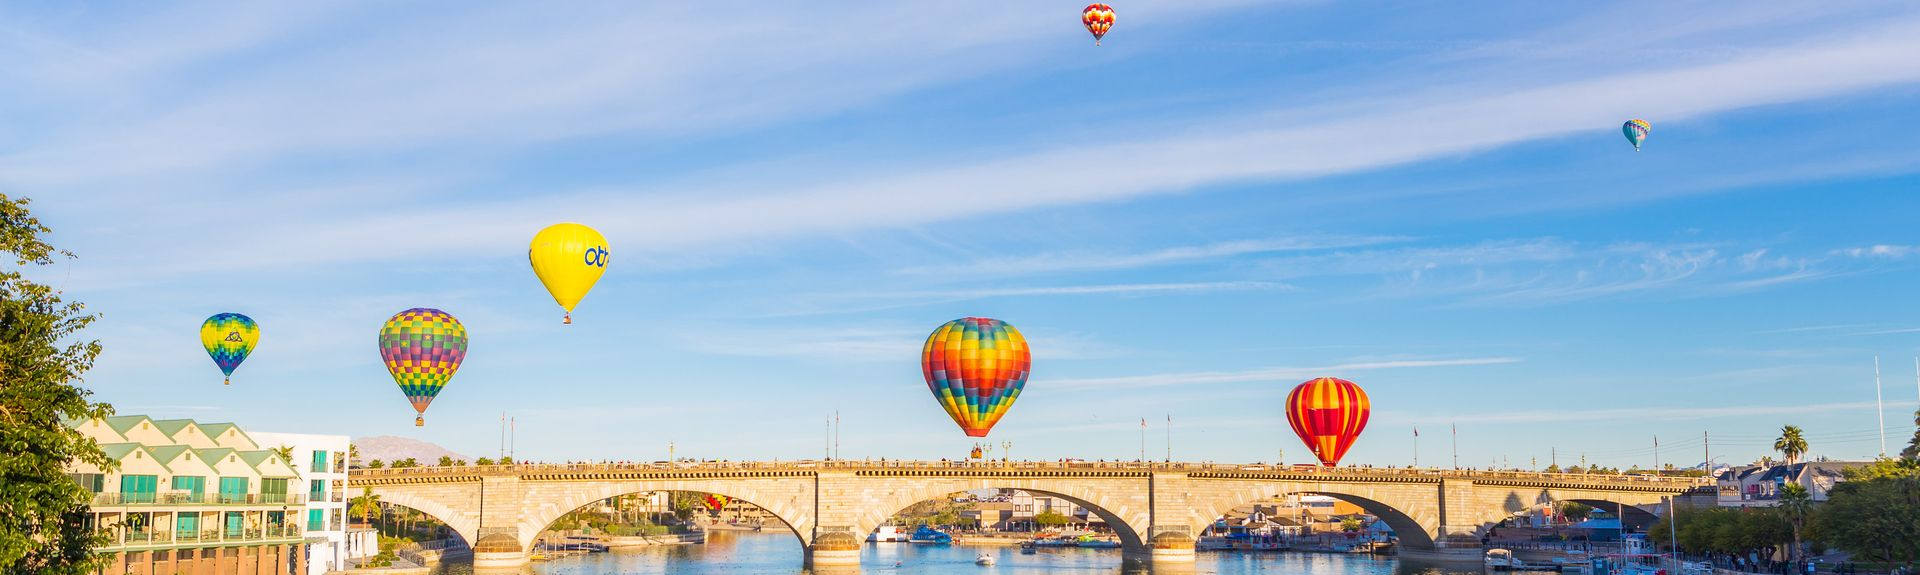 Lake Havasu City, Arizona, United States of America